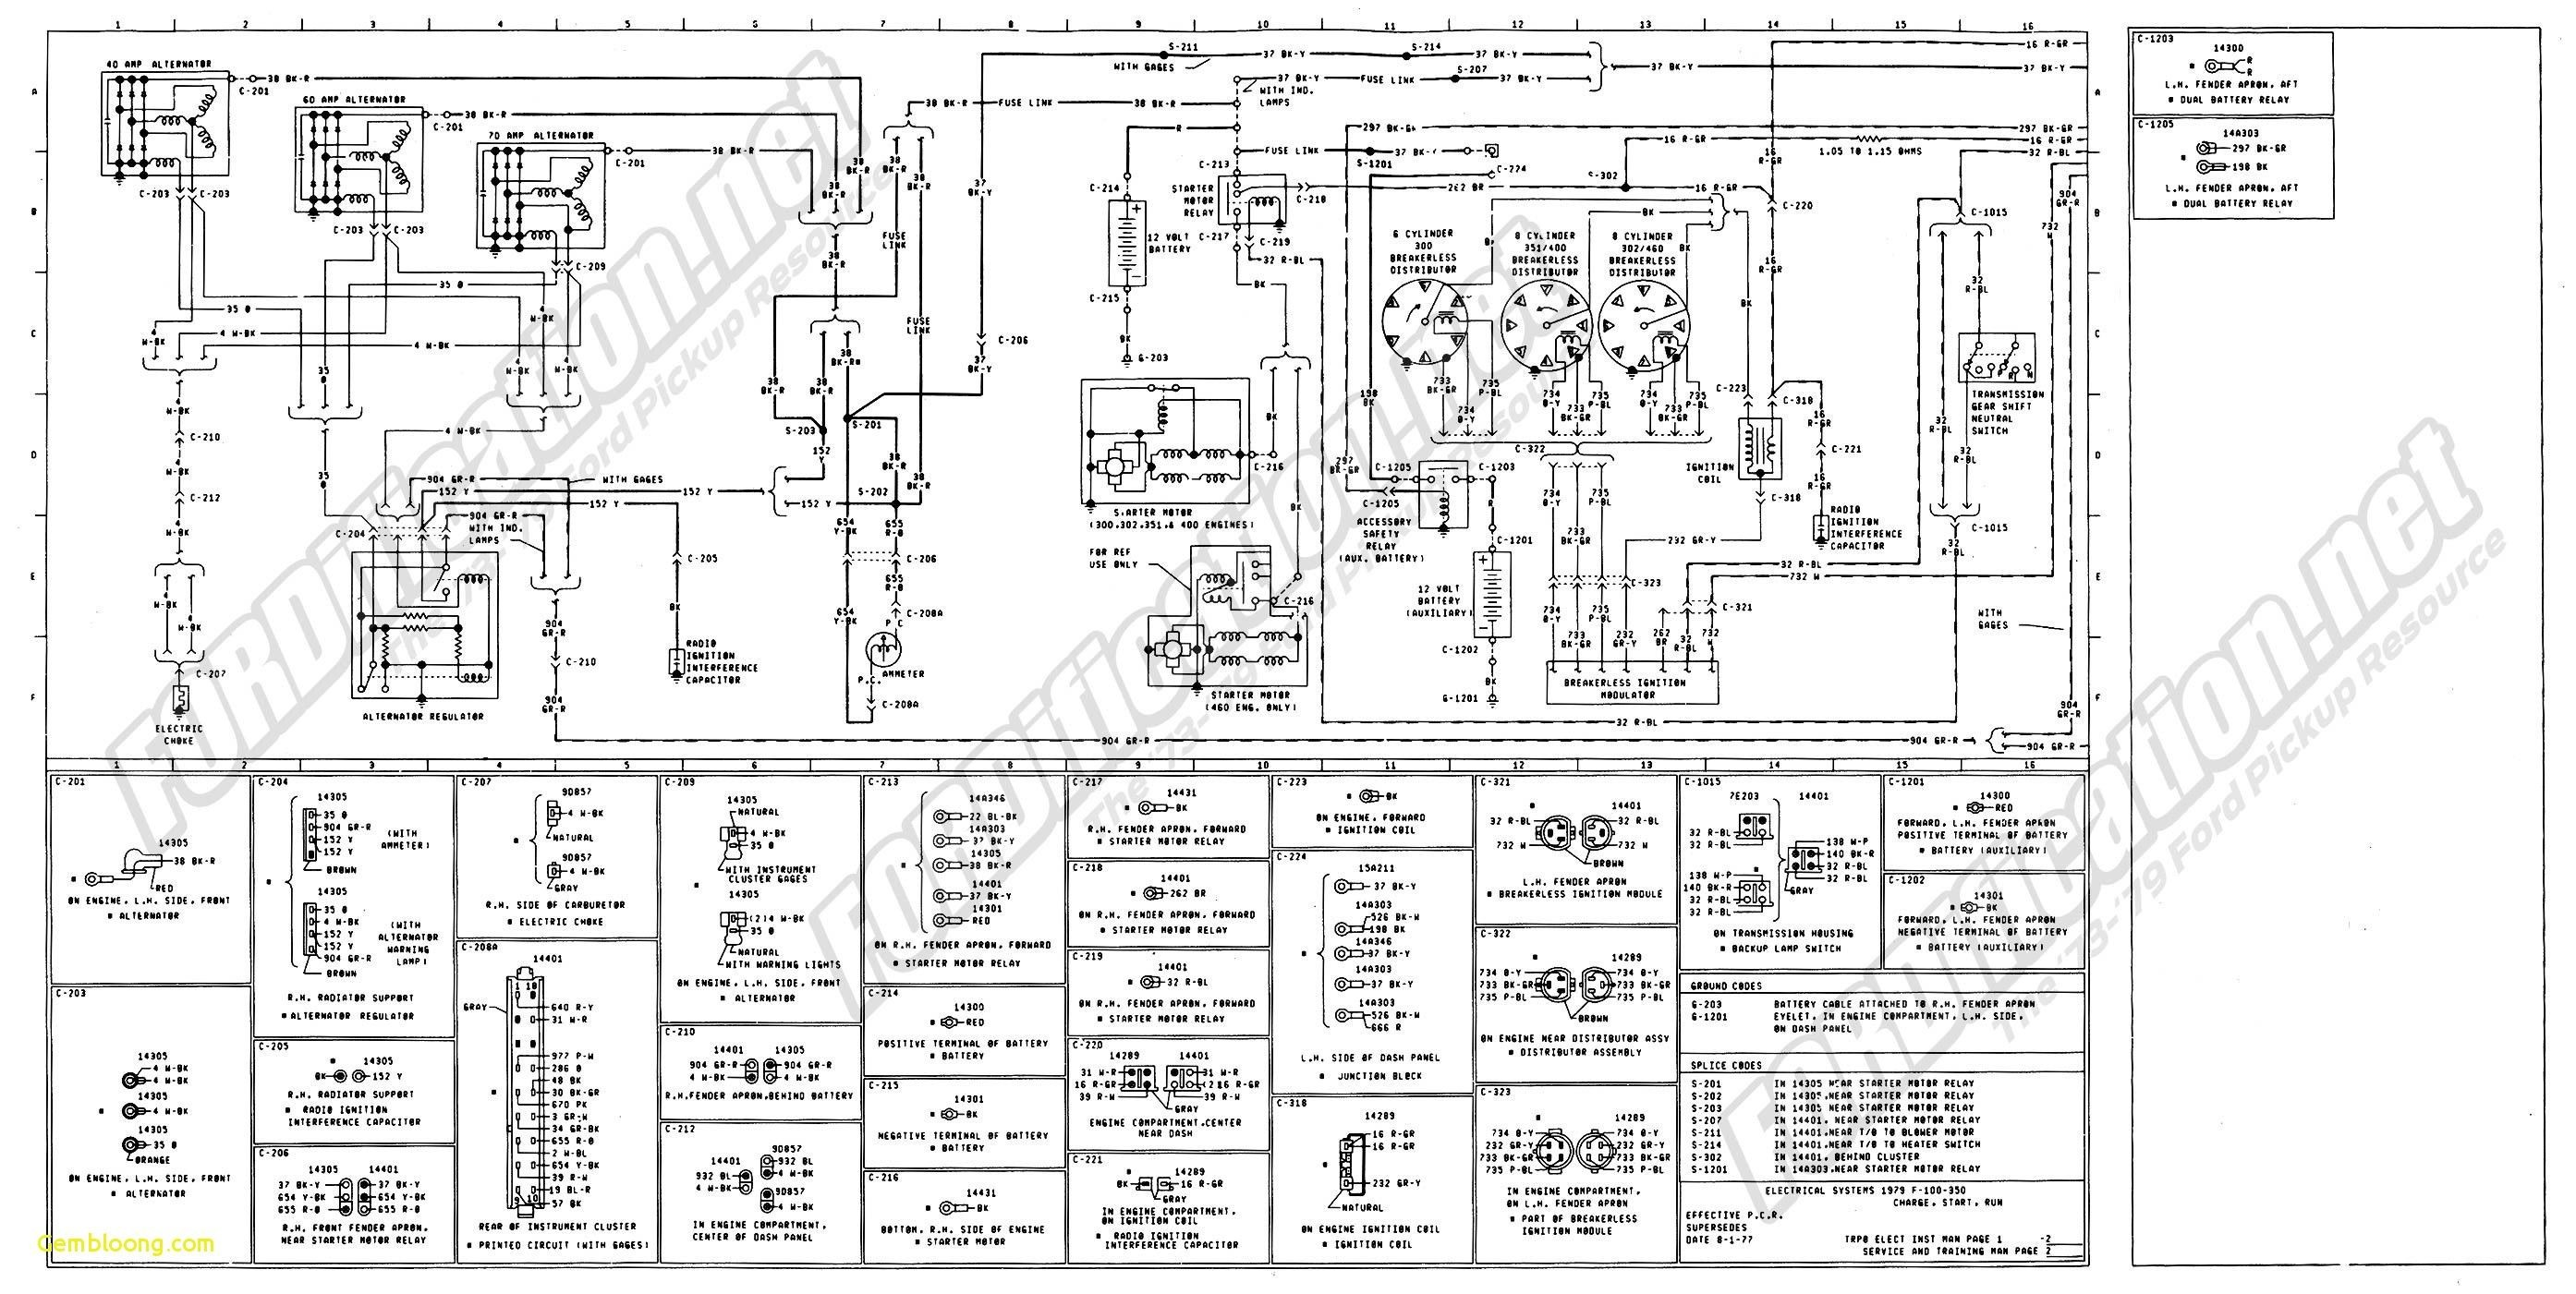 1996 Jeep Grand Cherokee Engine Diagram 1997 Jeep Grand Cherokee Electrical Wiring Simple Guide Of 1996 Jeep Grand Cherokee Engine Diagram